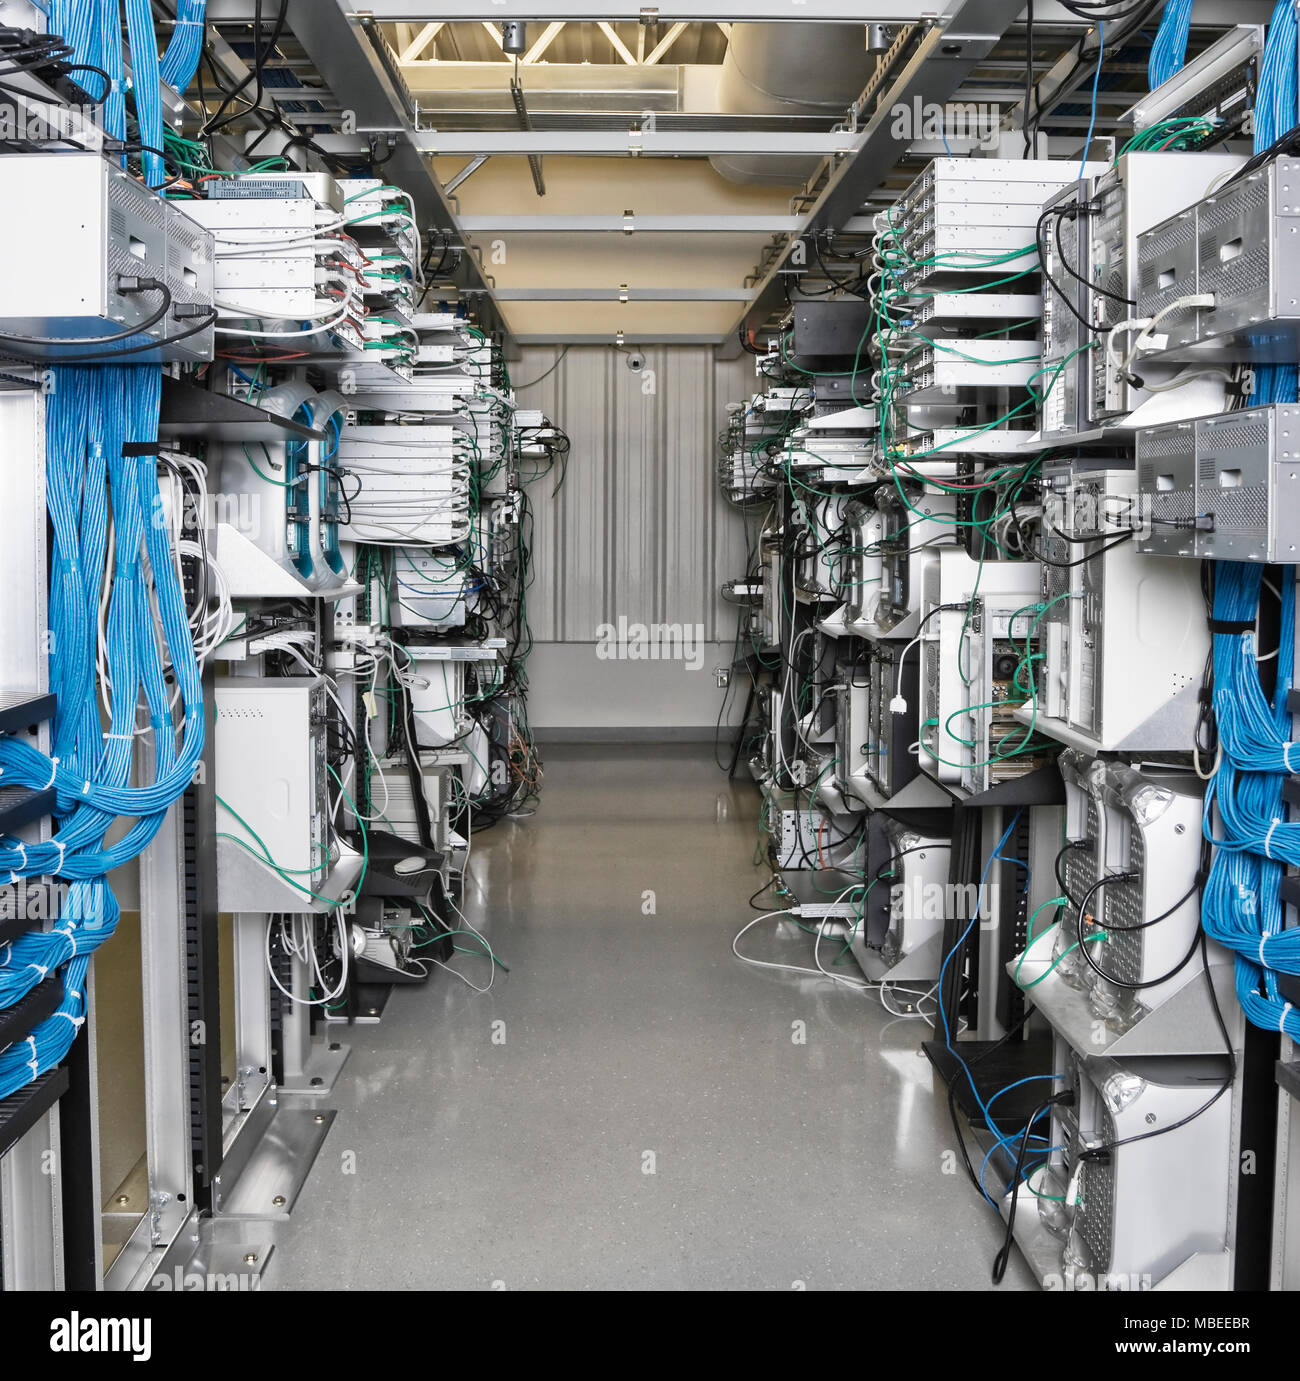 server room aisle showing computer servers and cat 5 cables stock